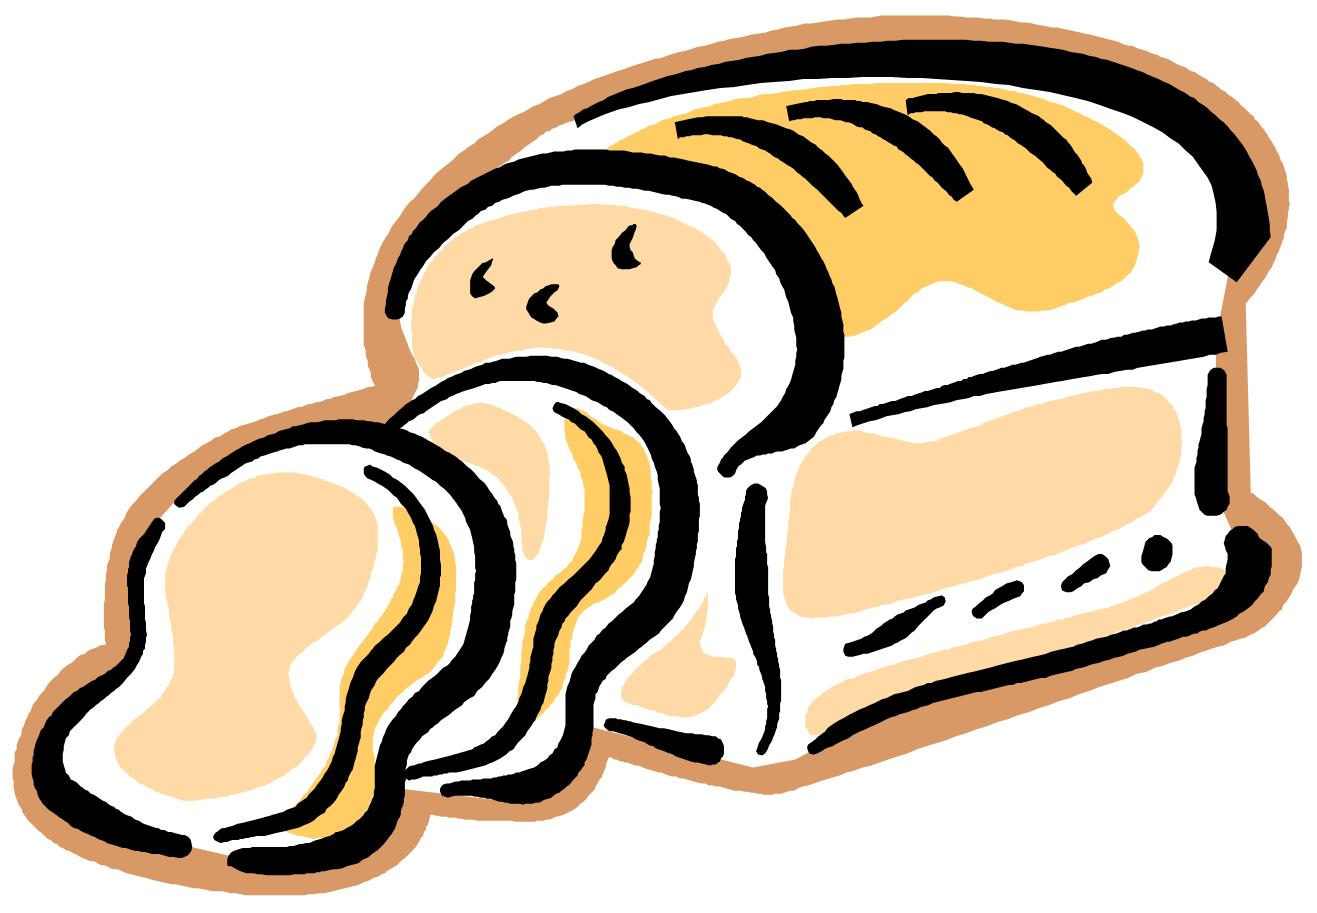 Loaf of bread bread clipart and illustration bread clip art vector - Clipartix